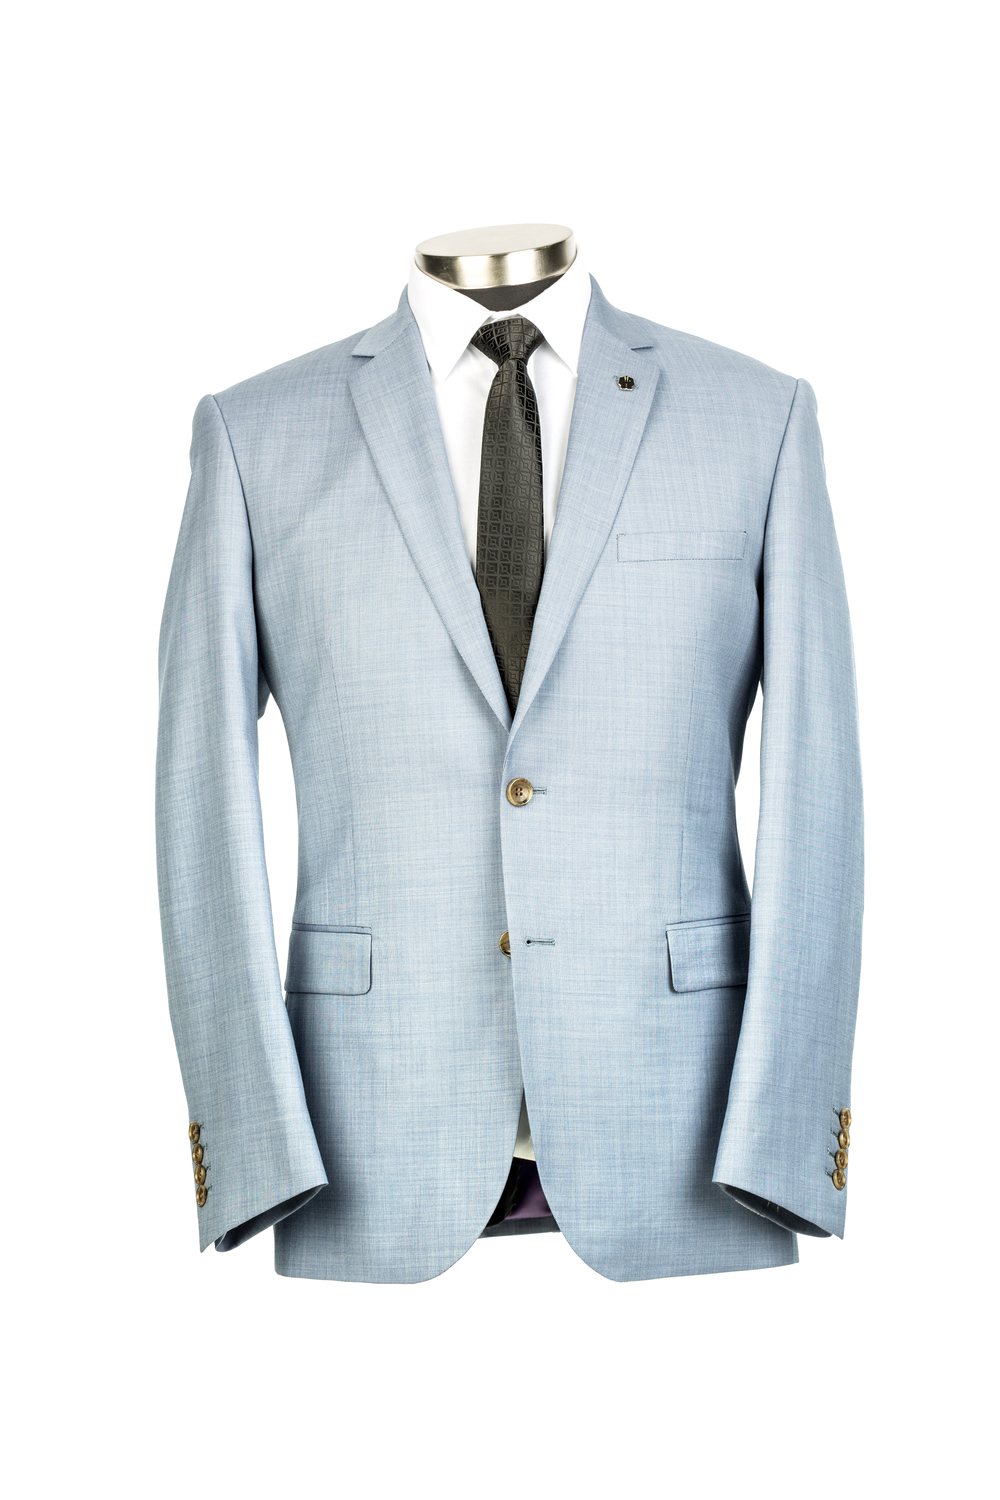 Kenneth Blake Light Blue Jacket